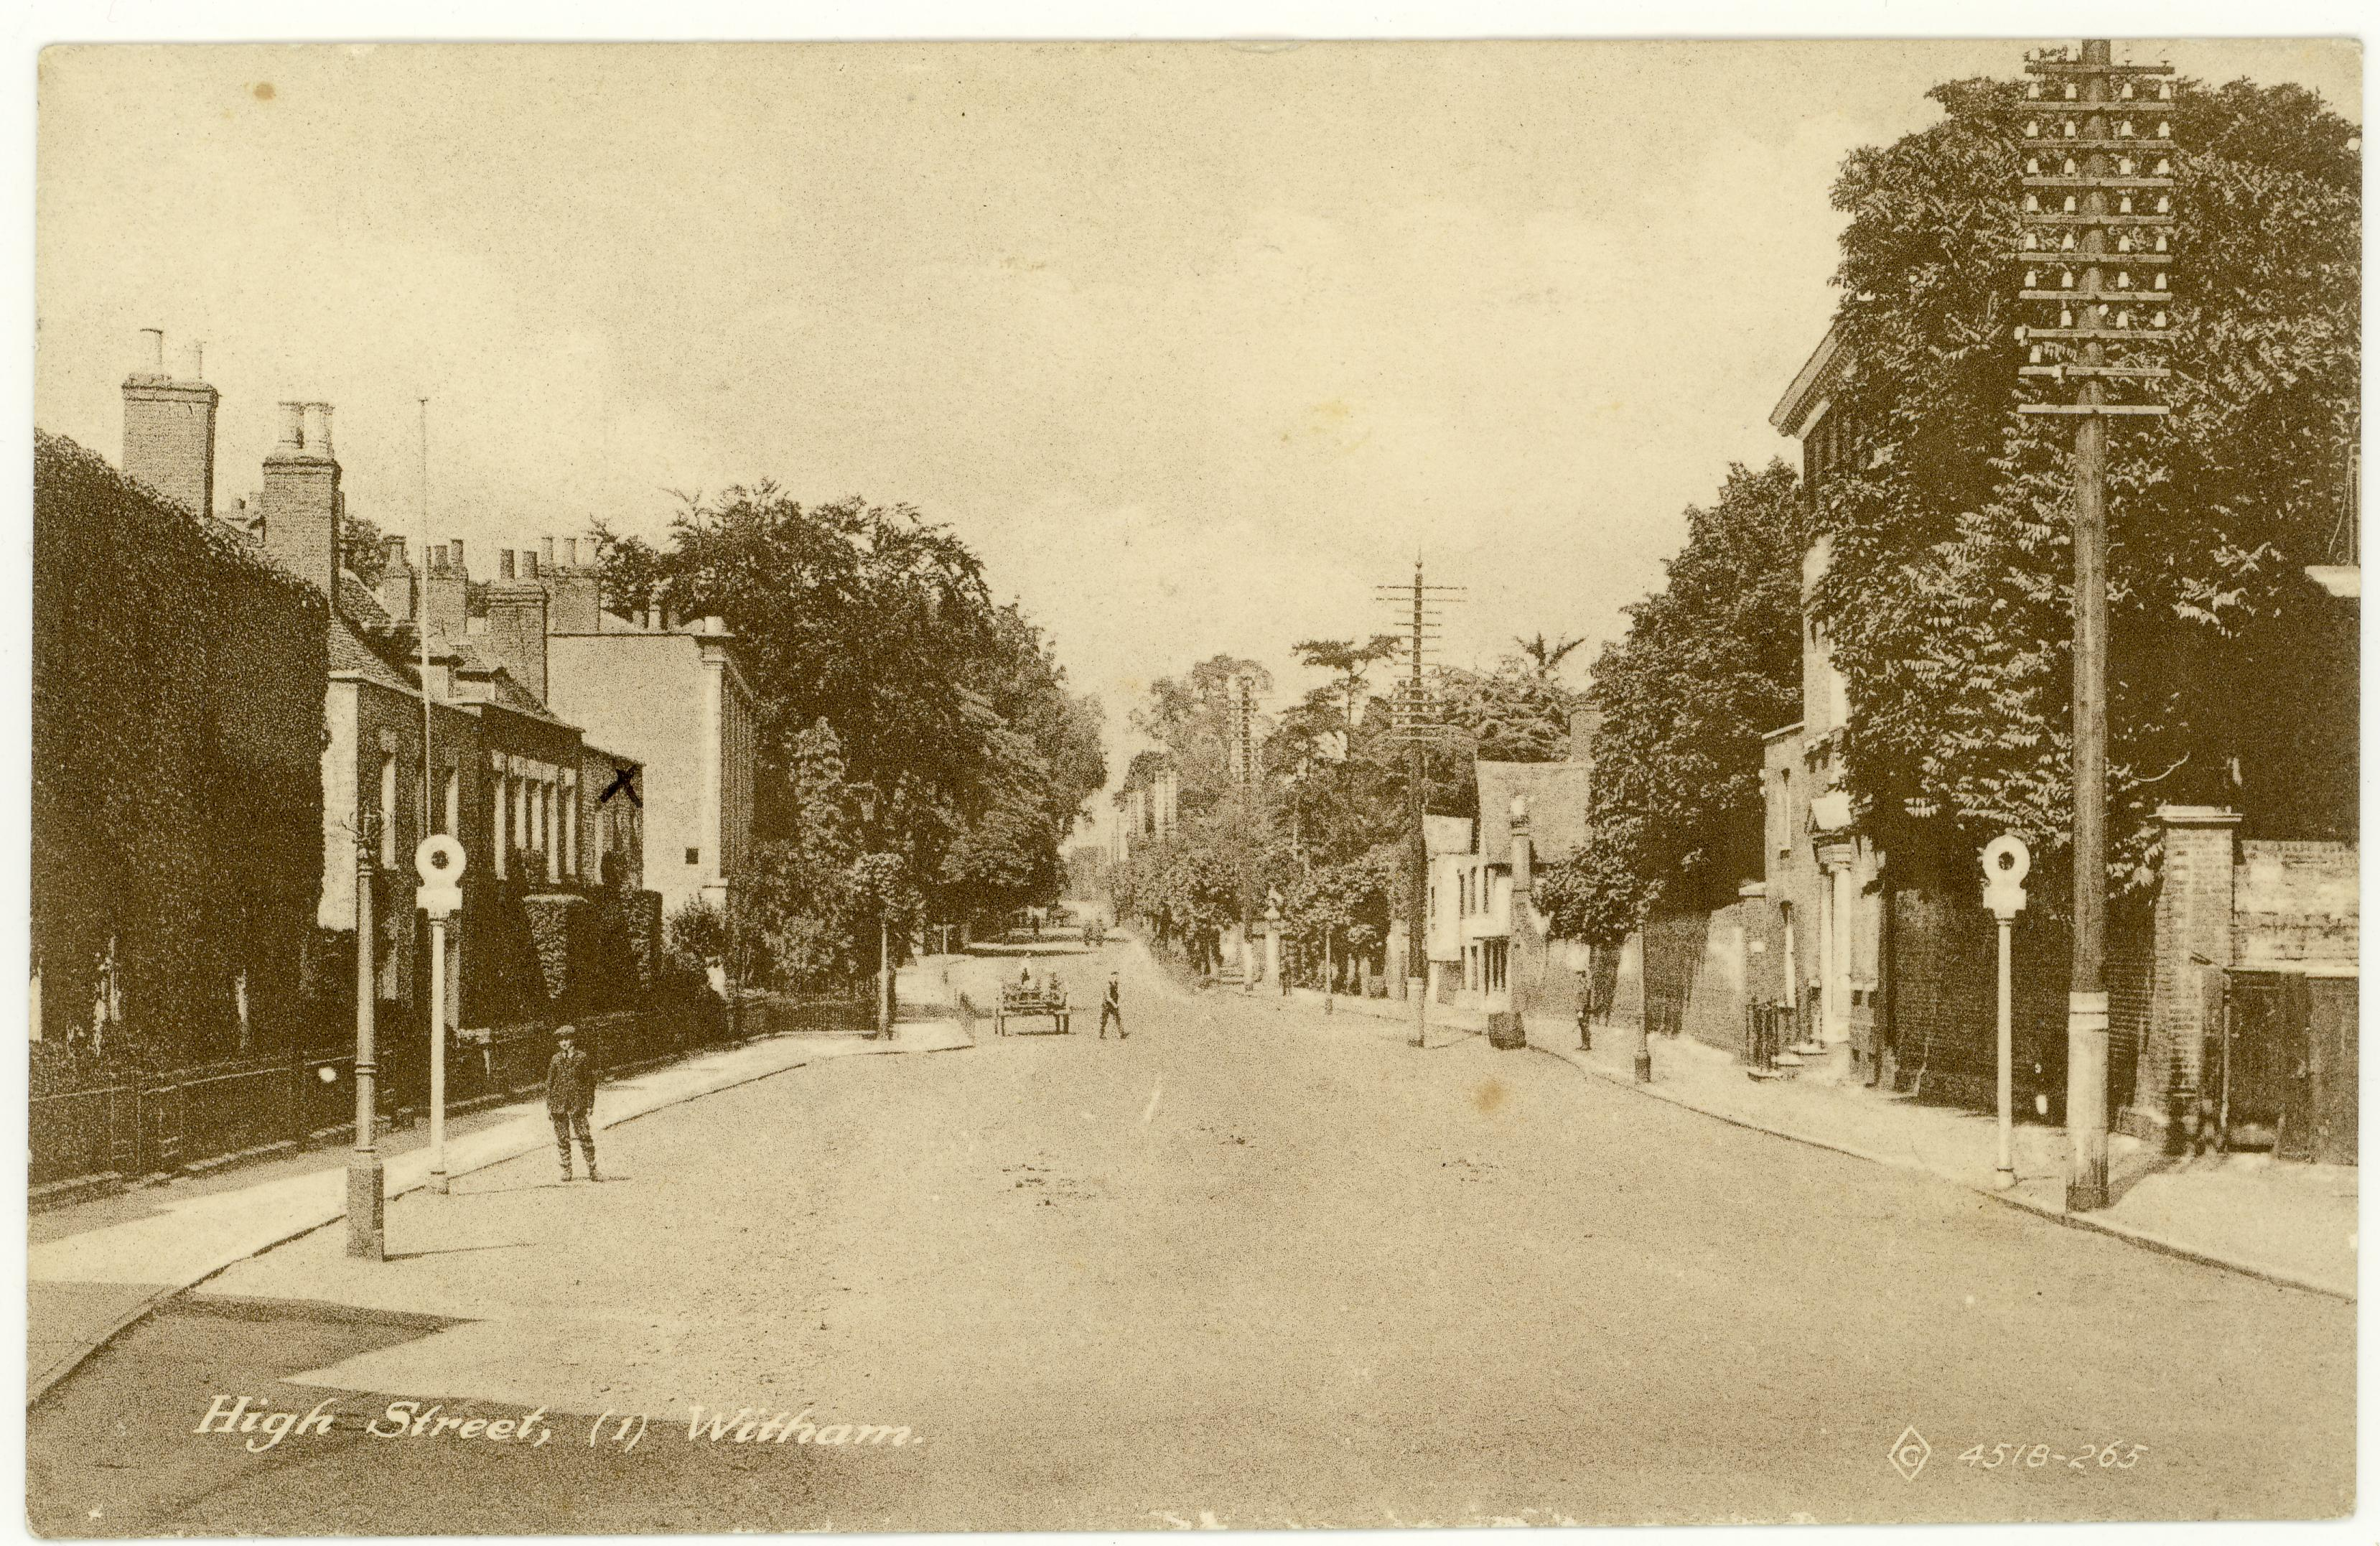 The top end of Newland Street, as discussed below.